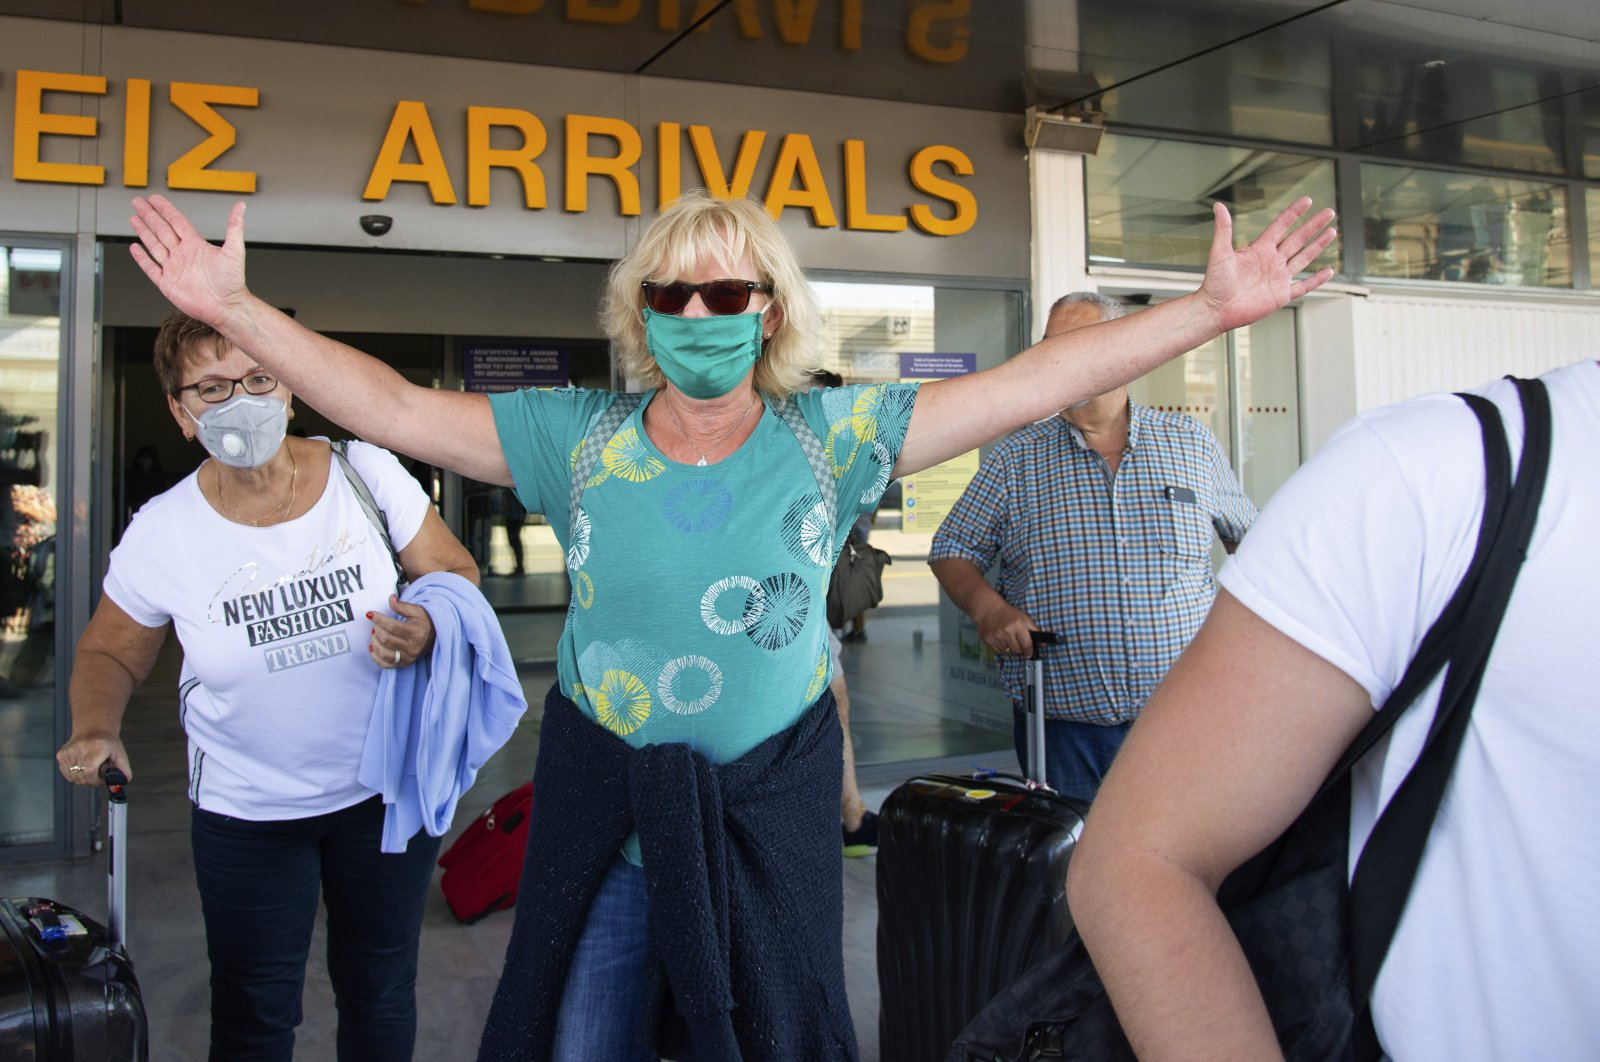 A tourist reacts as she arrives with others at Nikos Kazatzakis International Airport in Heraklion, Crete island, Greece, July 1, 2020. (AP Photo)